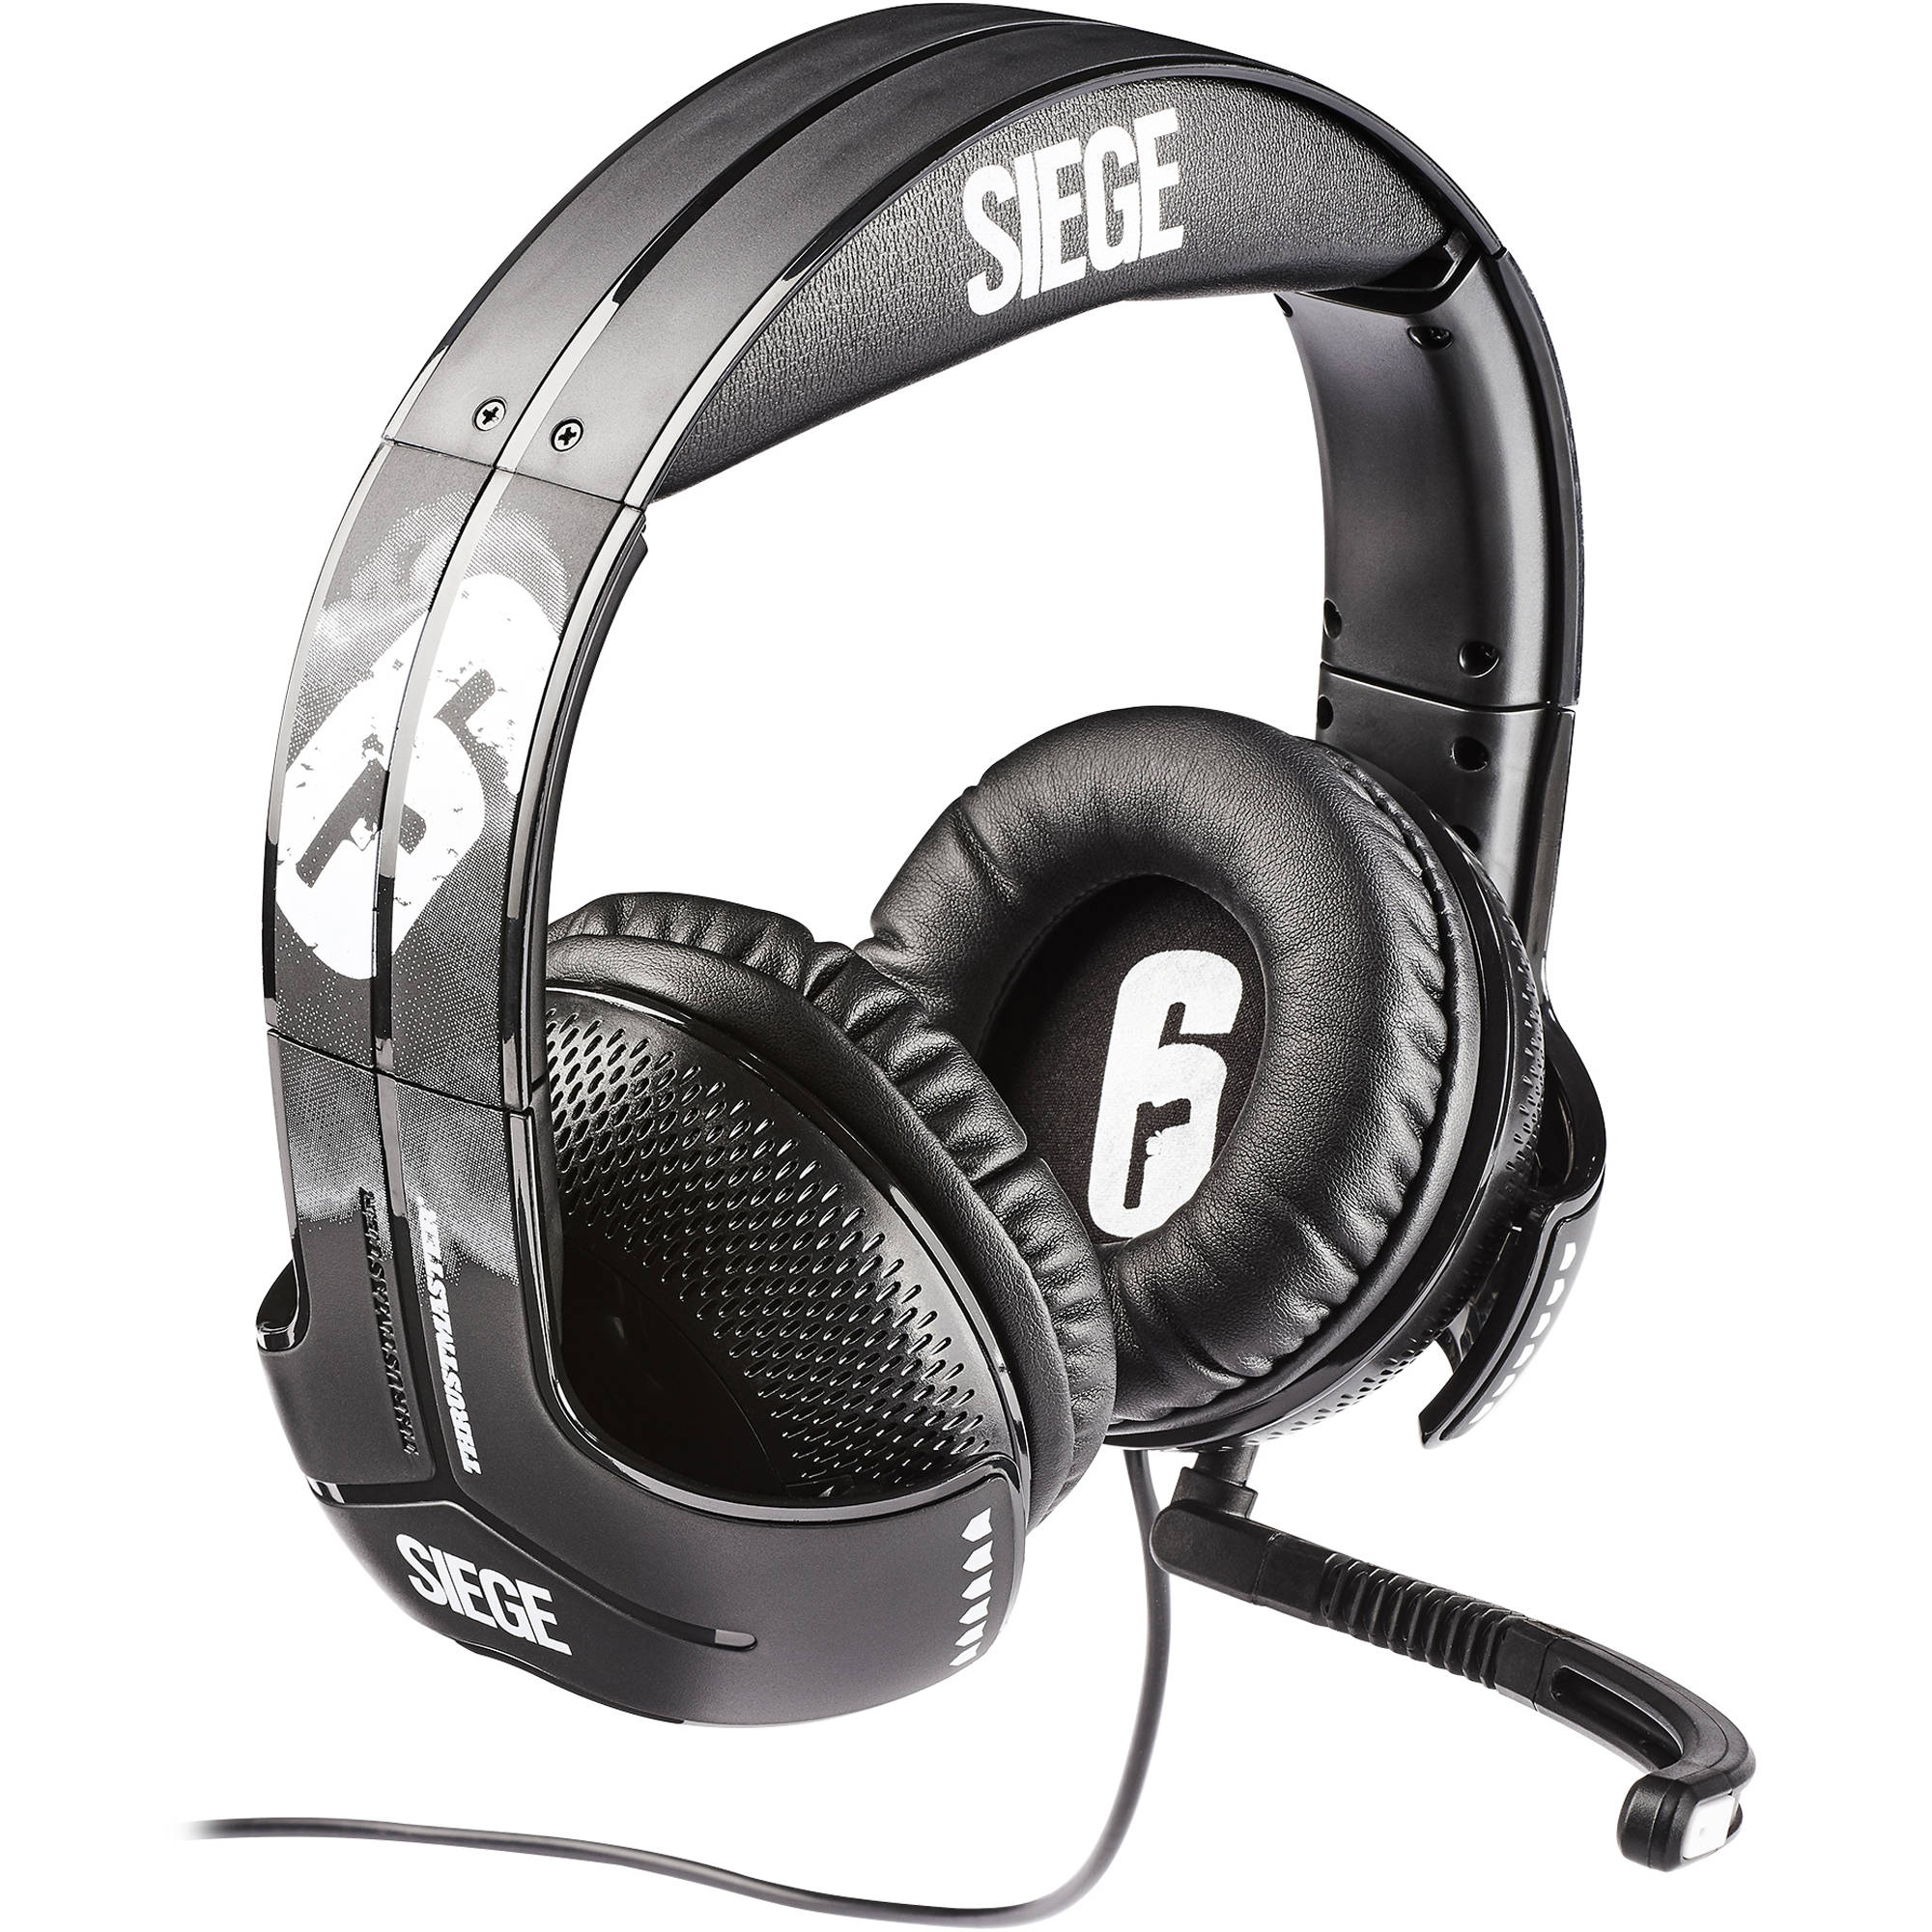 Thrustmaster Y-300CPX Gaming Headset (Rainbow Six Siege Collection Edition)